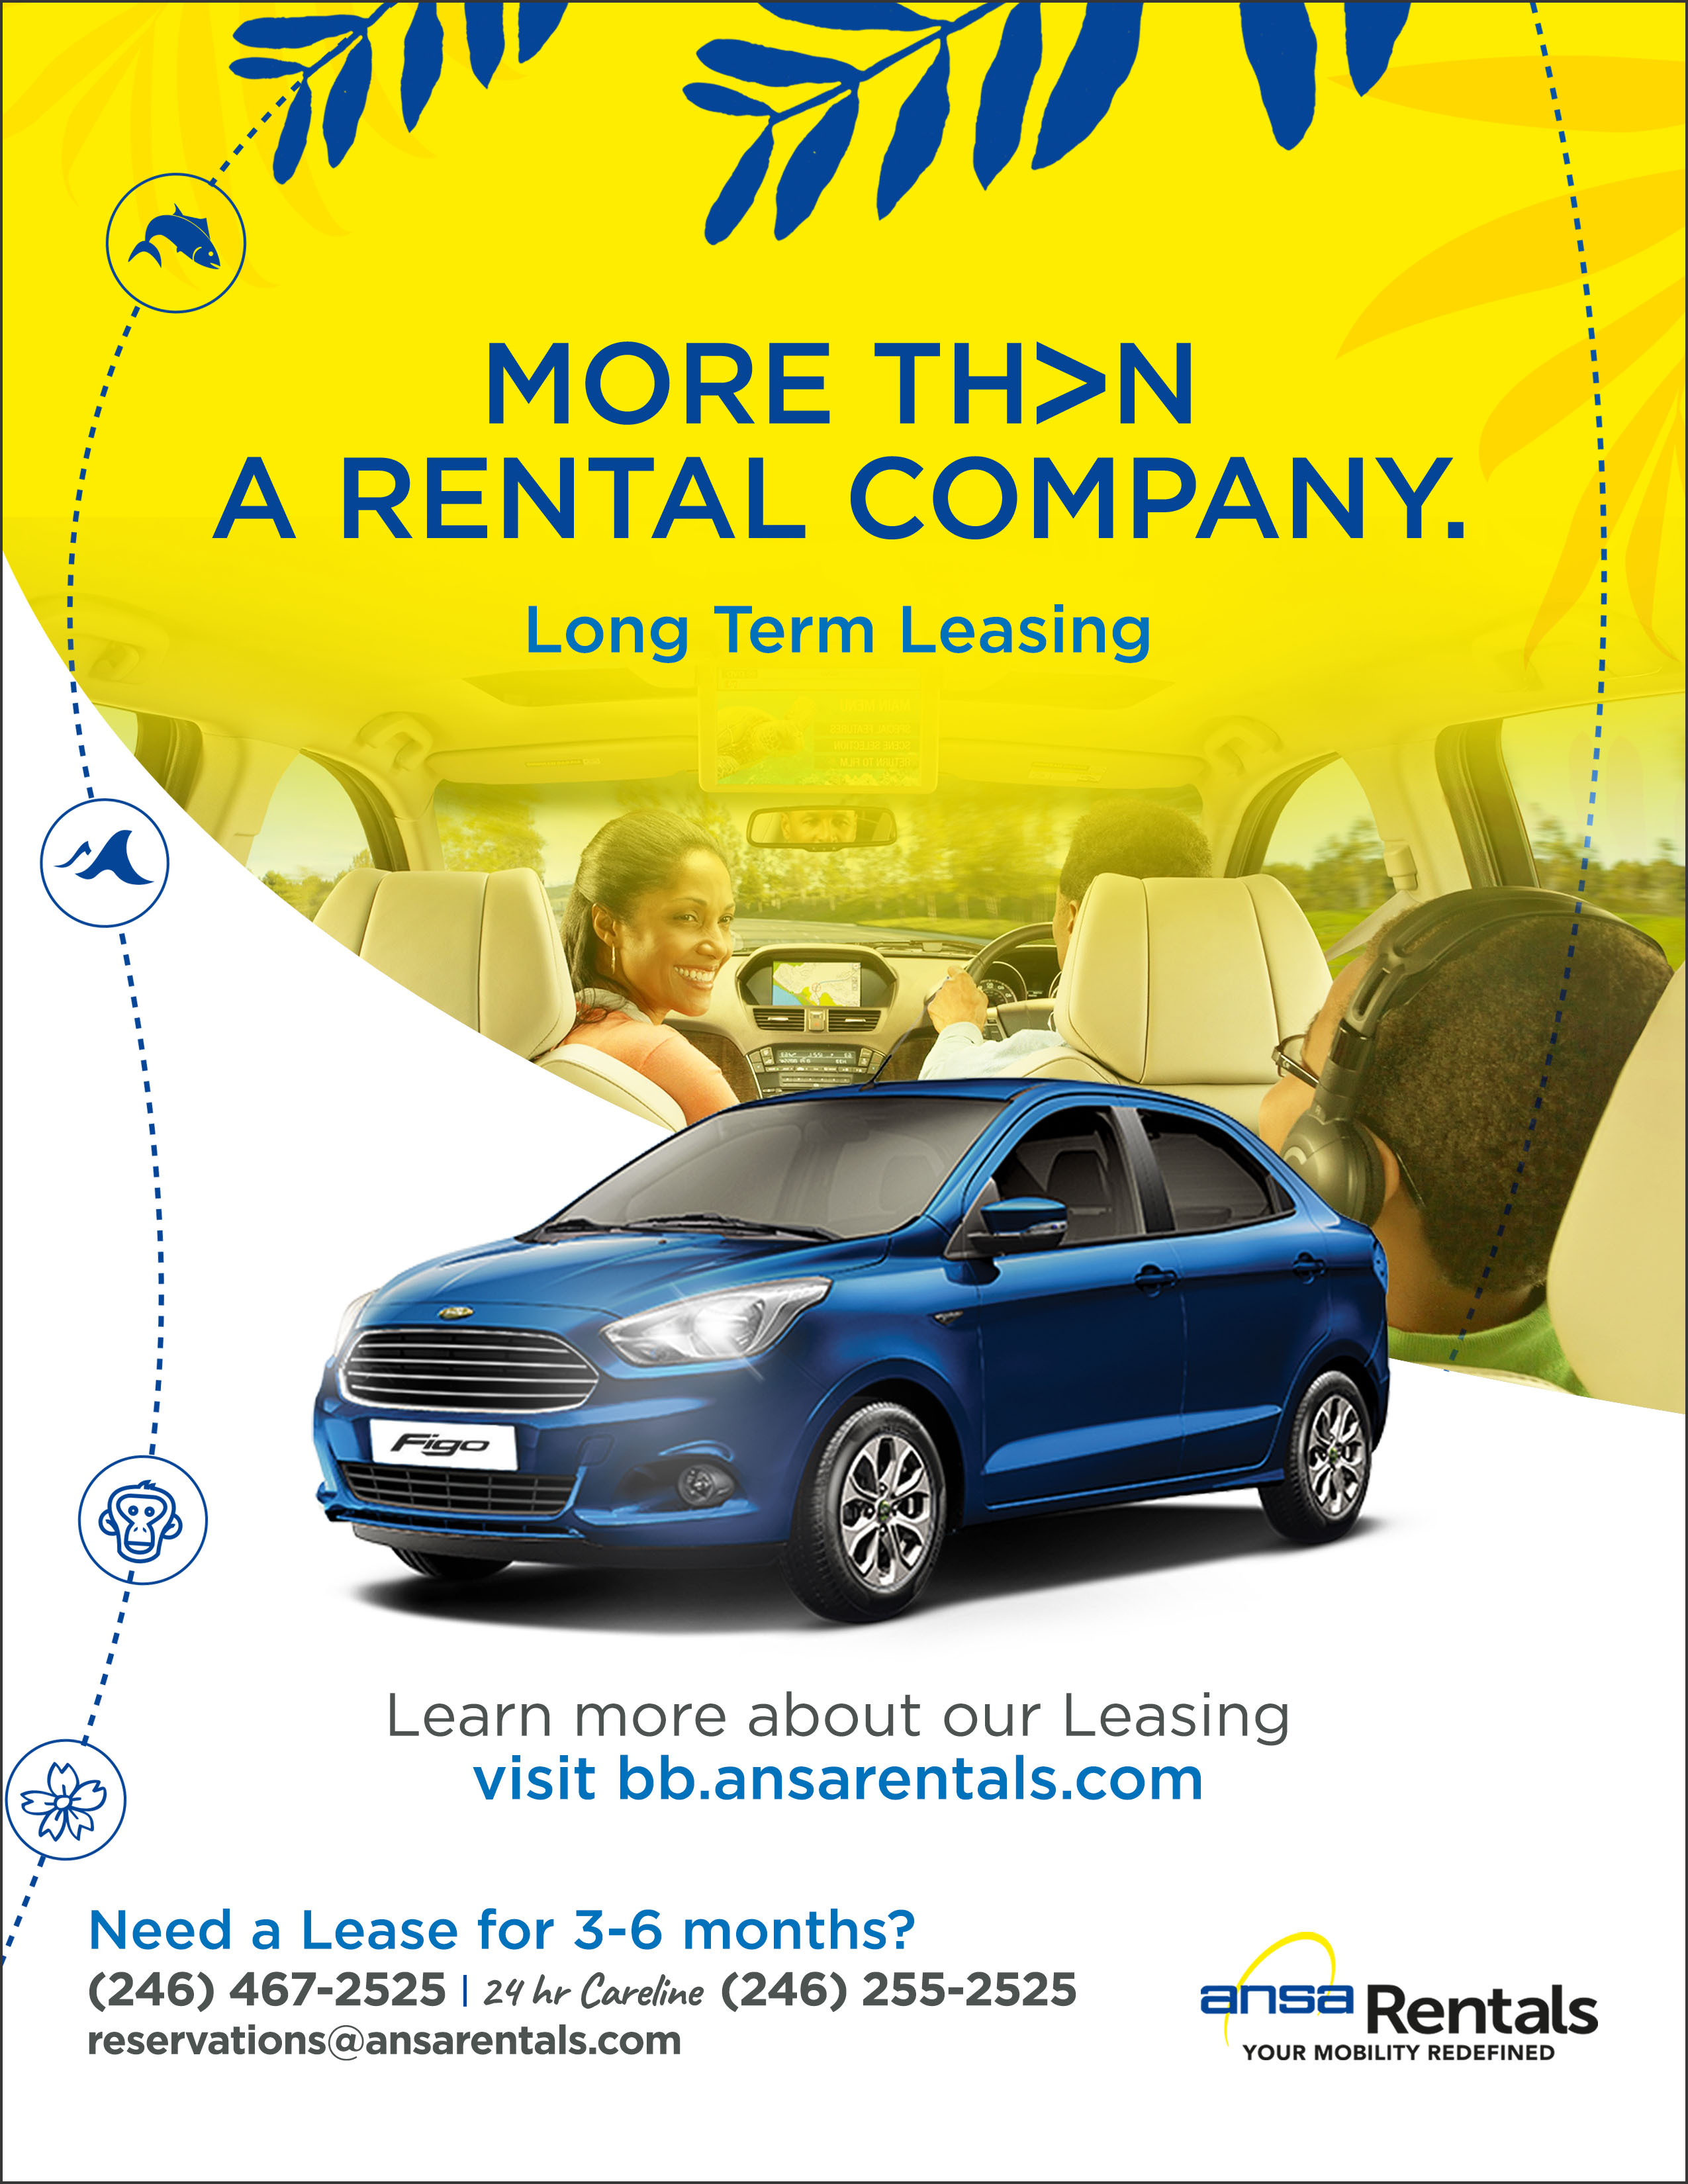 Ansa Rentals Barbados Long Term Leasing